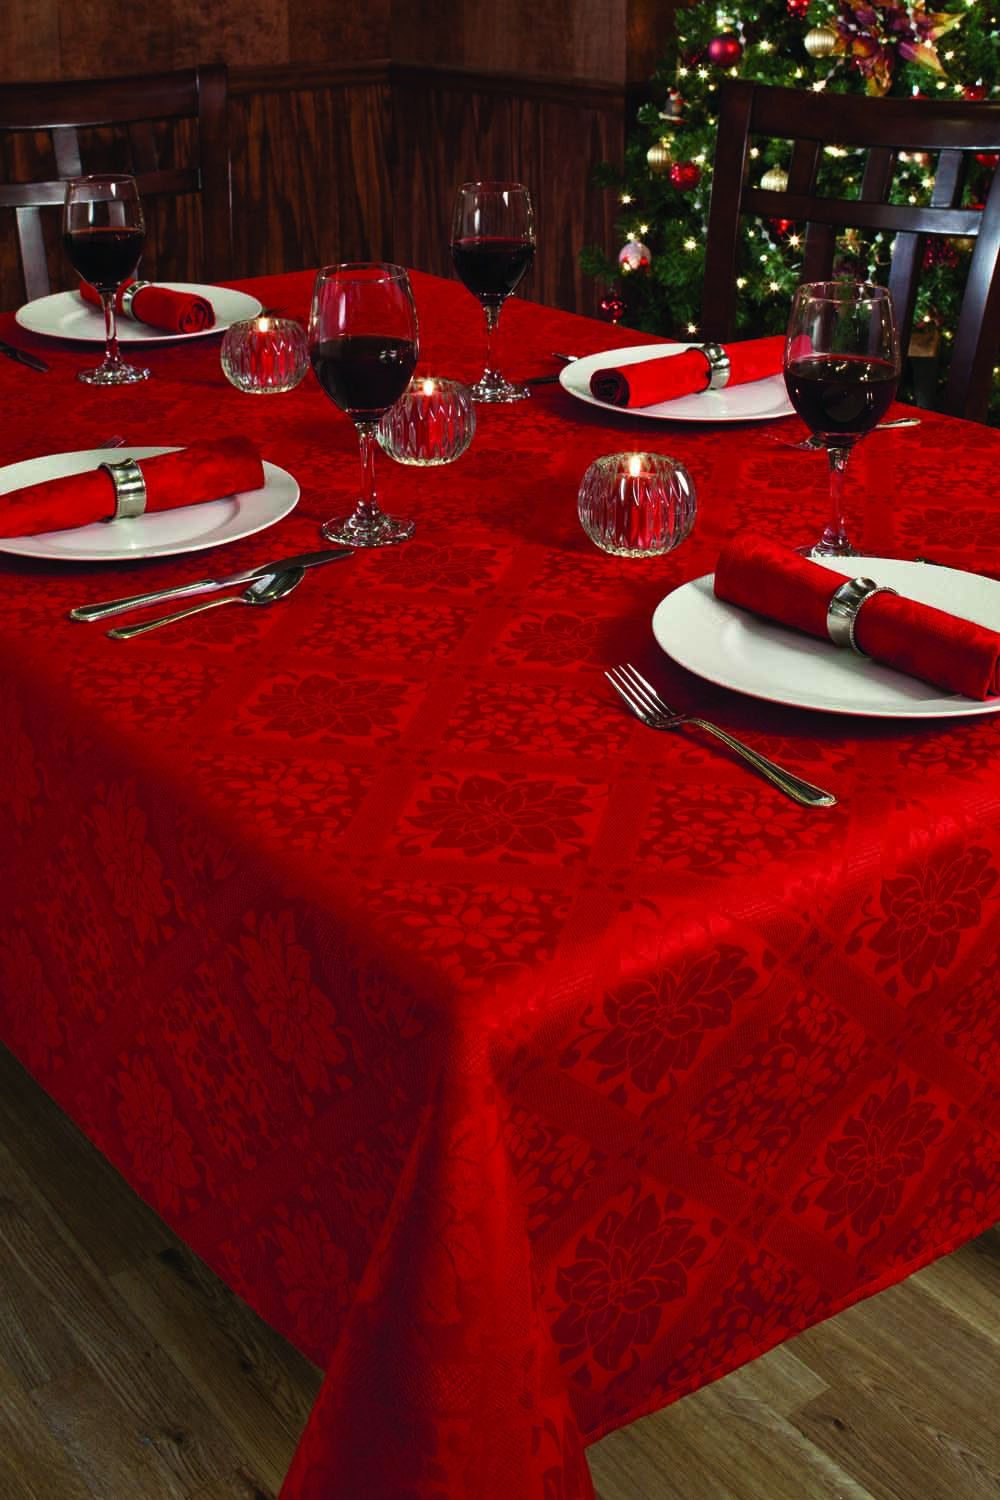 Christmas Holiday Red Damask Poinsettia Diamond Table Cloth 60 X120 Christmas Decorations For The Home Christmas Dinner Table Holiday Decor Christmas